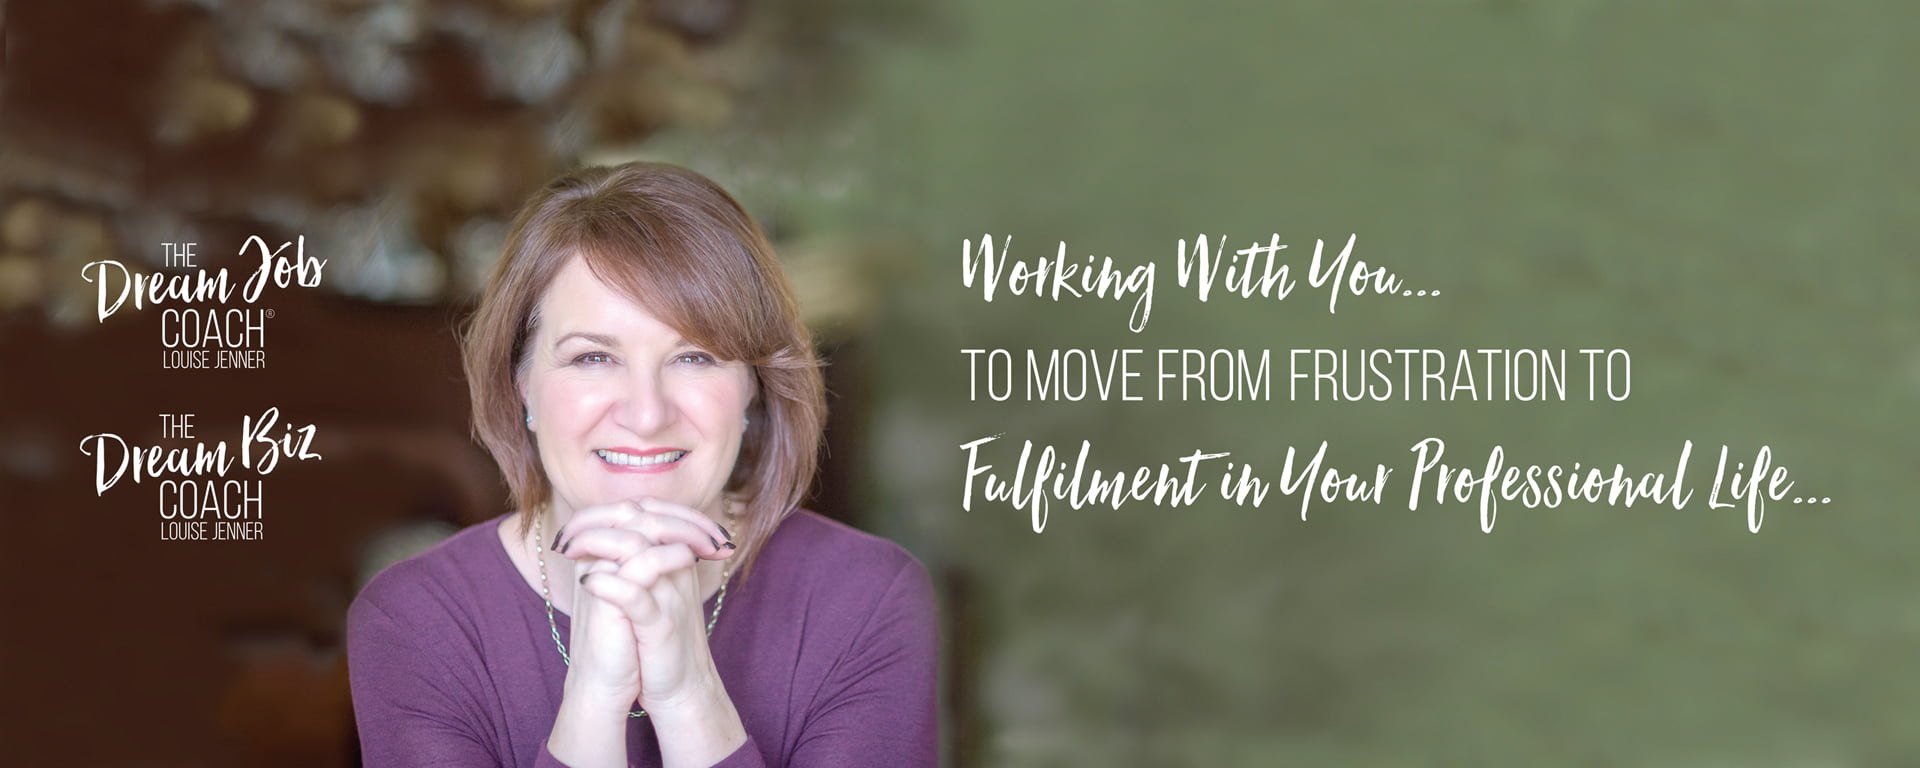 Louise Jenner, The Dream Job Coach, The Dream Biz Coach - Career Coach and Business Coach - Devon - Working with you to move from frustration to fulfilment in your professional life.